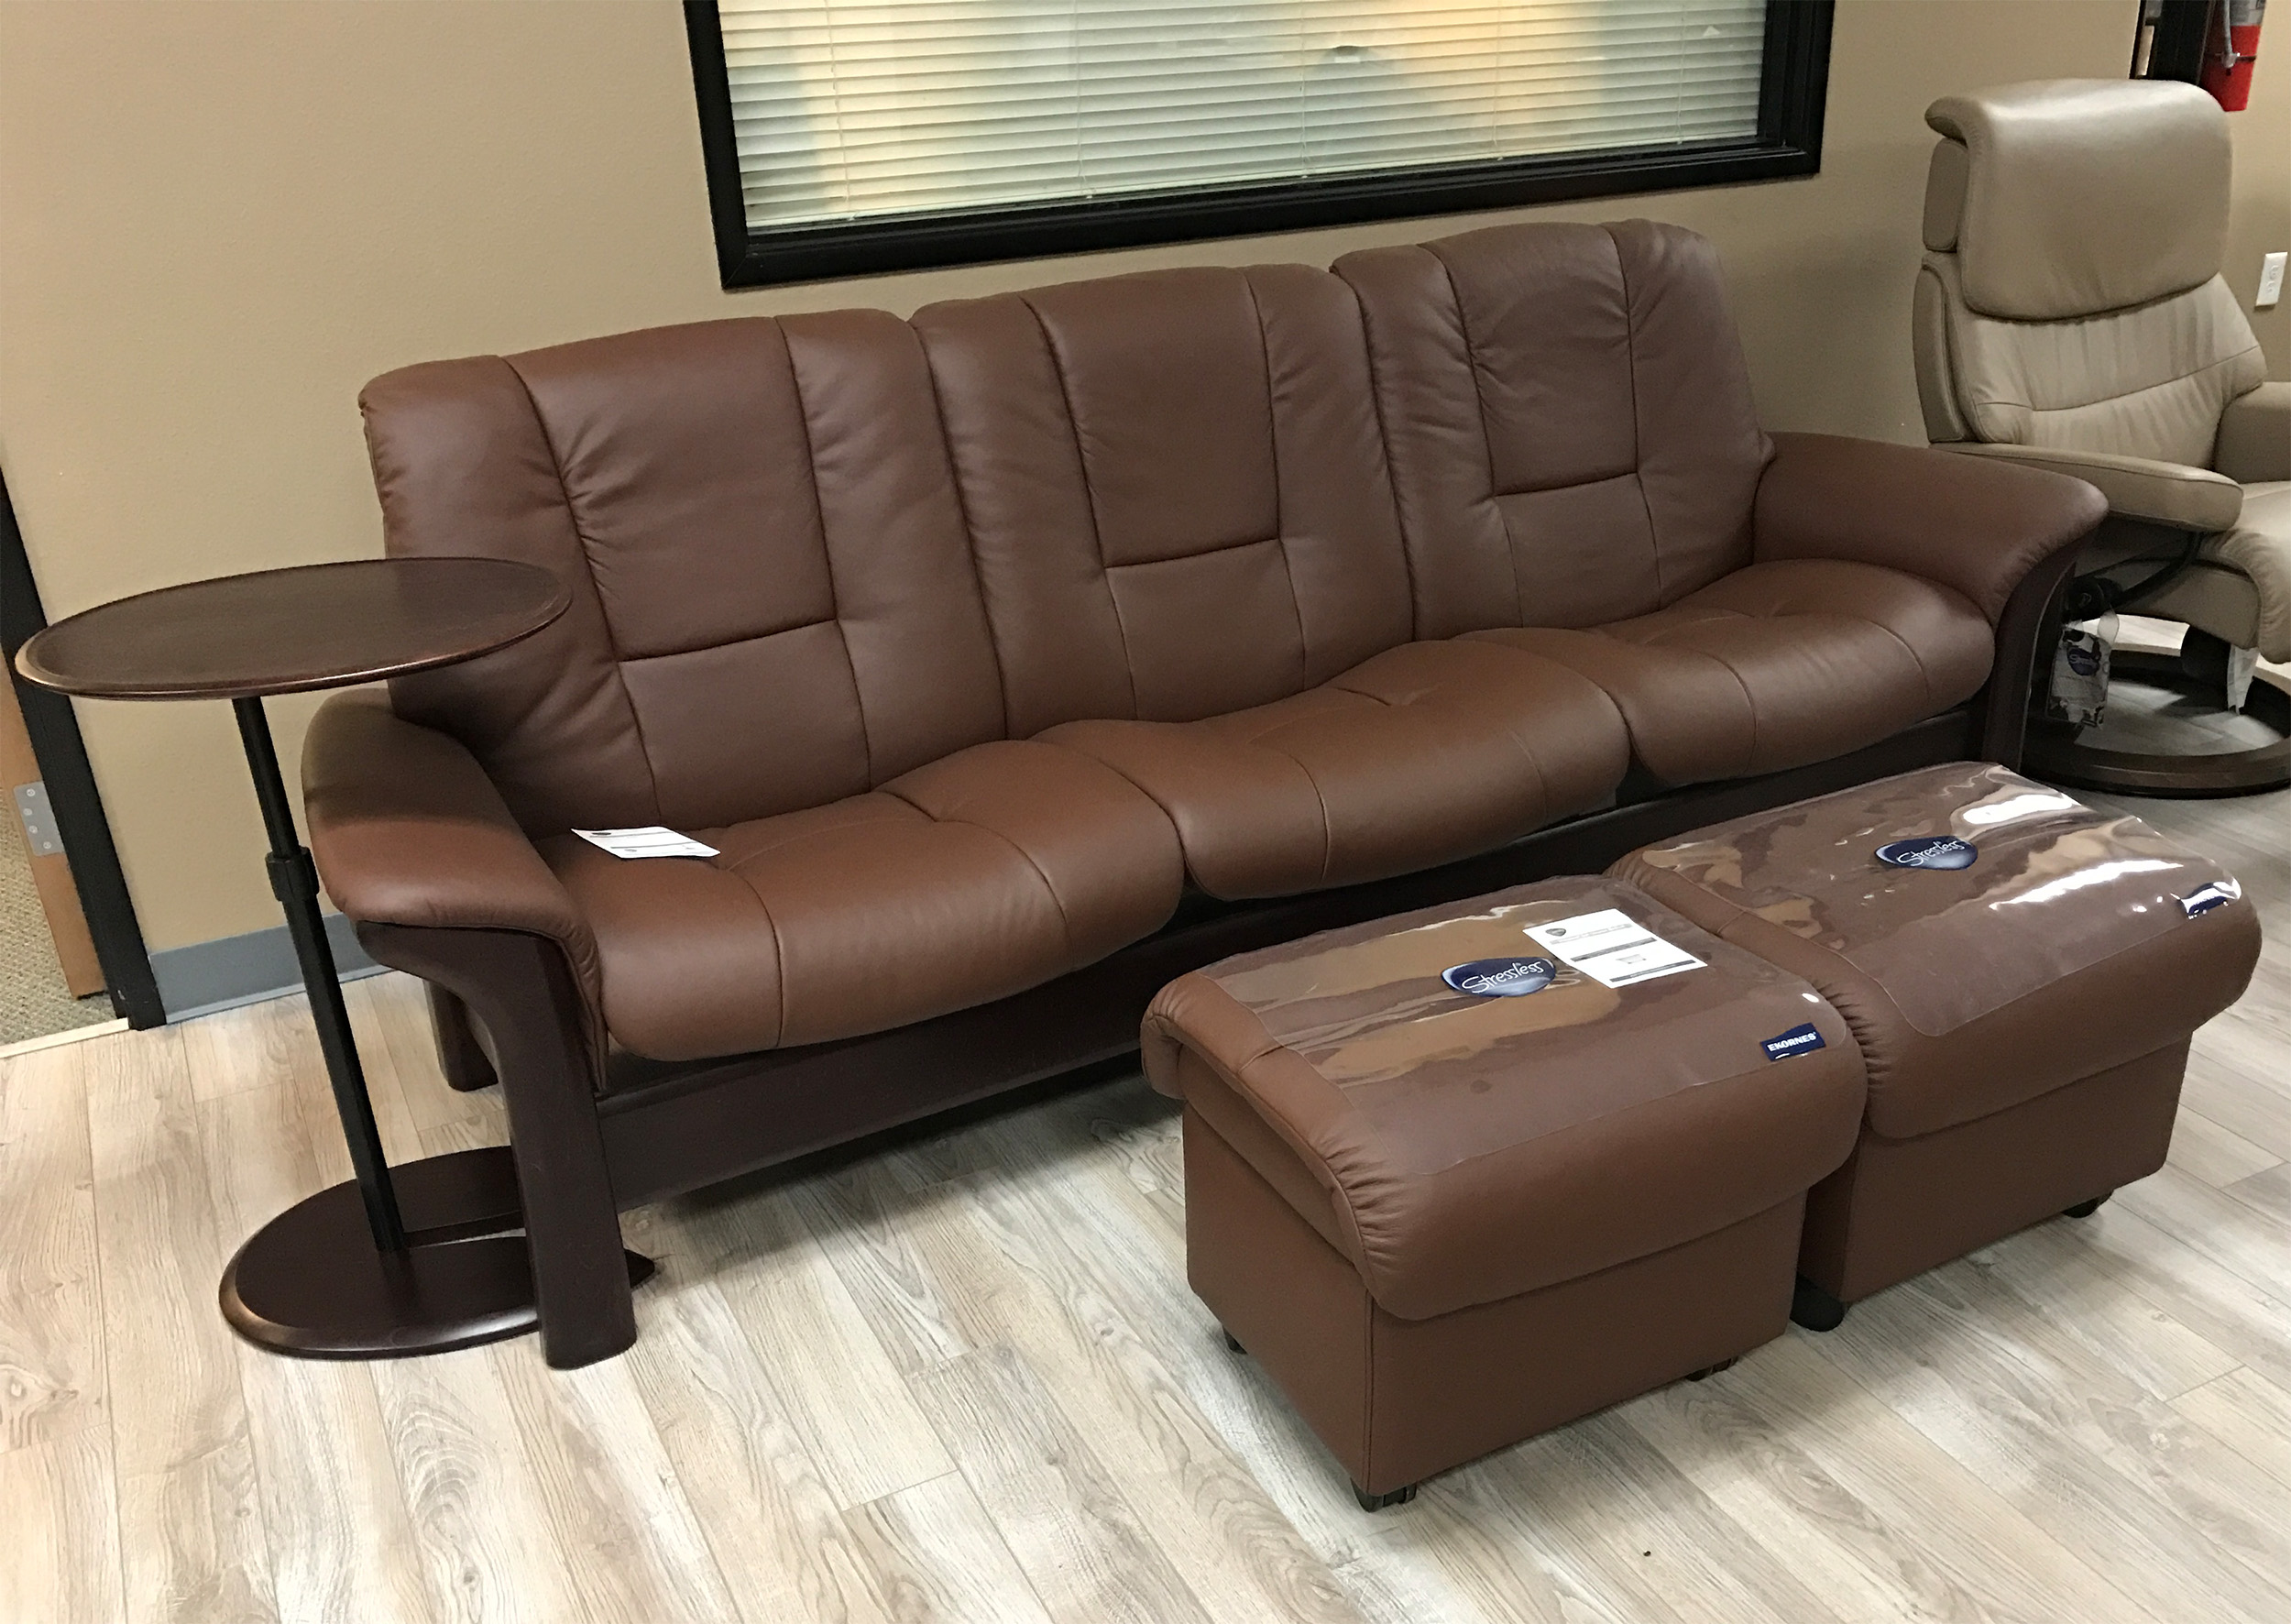 Strange Stressless Buckingham 3 Seat Low Back Sofa Paloma Brown Leather By Ekornes Gmtry Best Dining Table And Chair Ideas Images Gmtryco